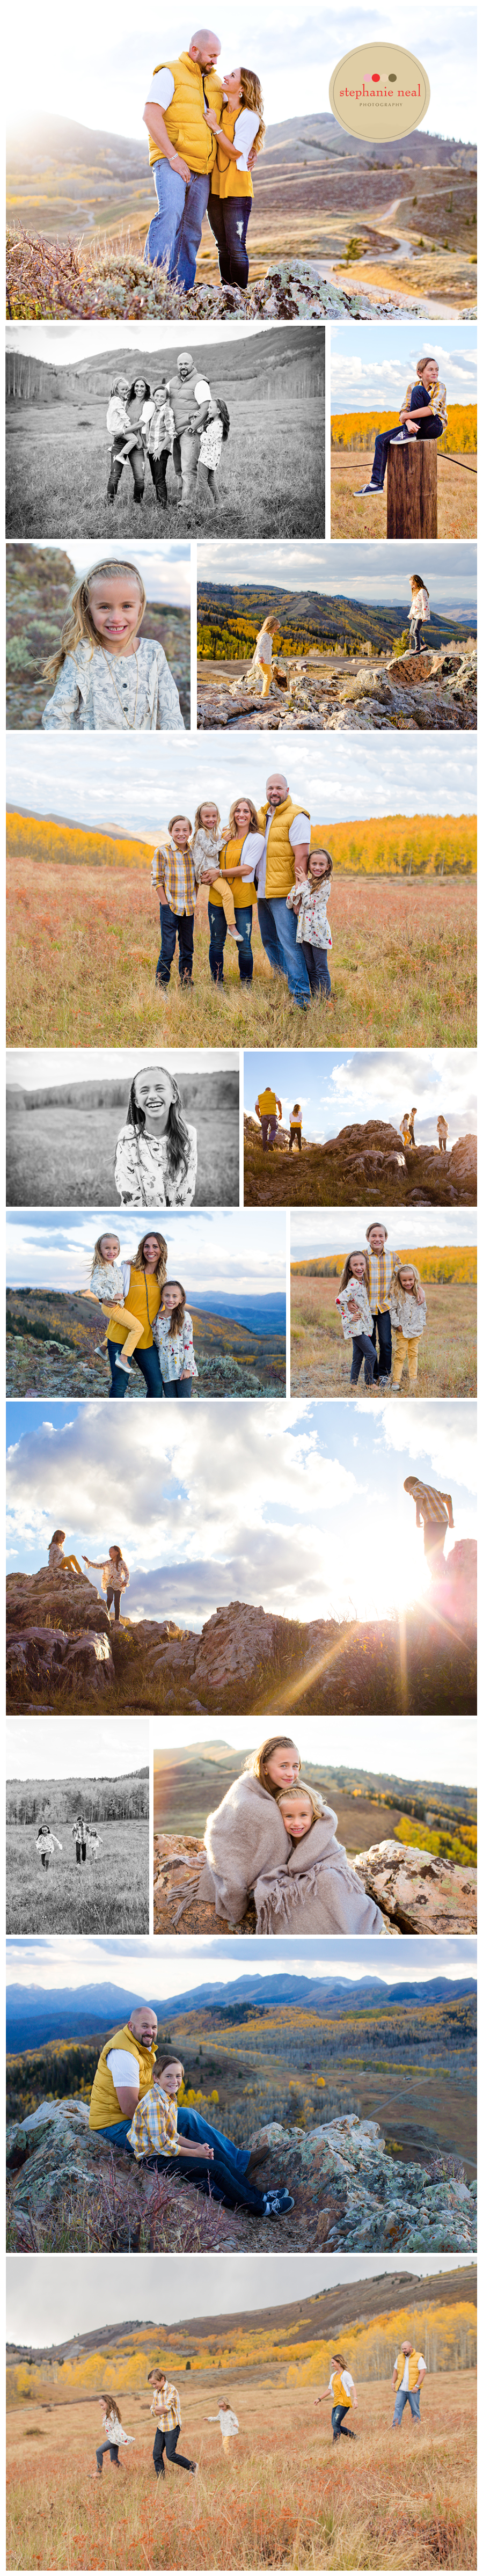 Deer Valley, Utah Fall Family Portrait session in the mountains.